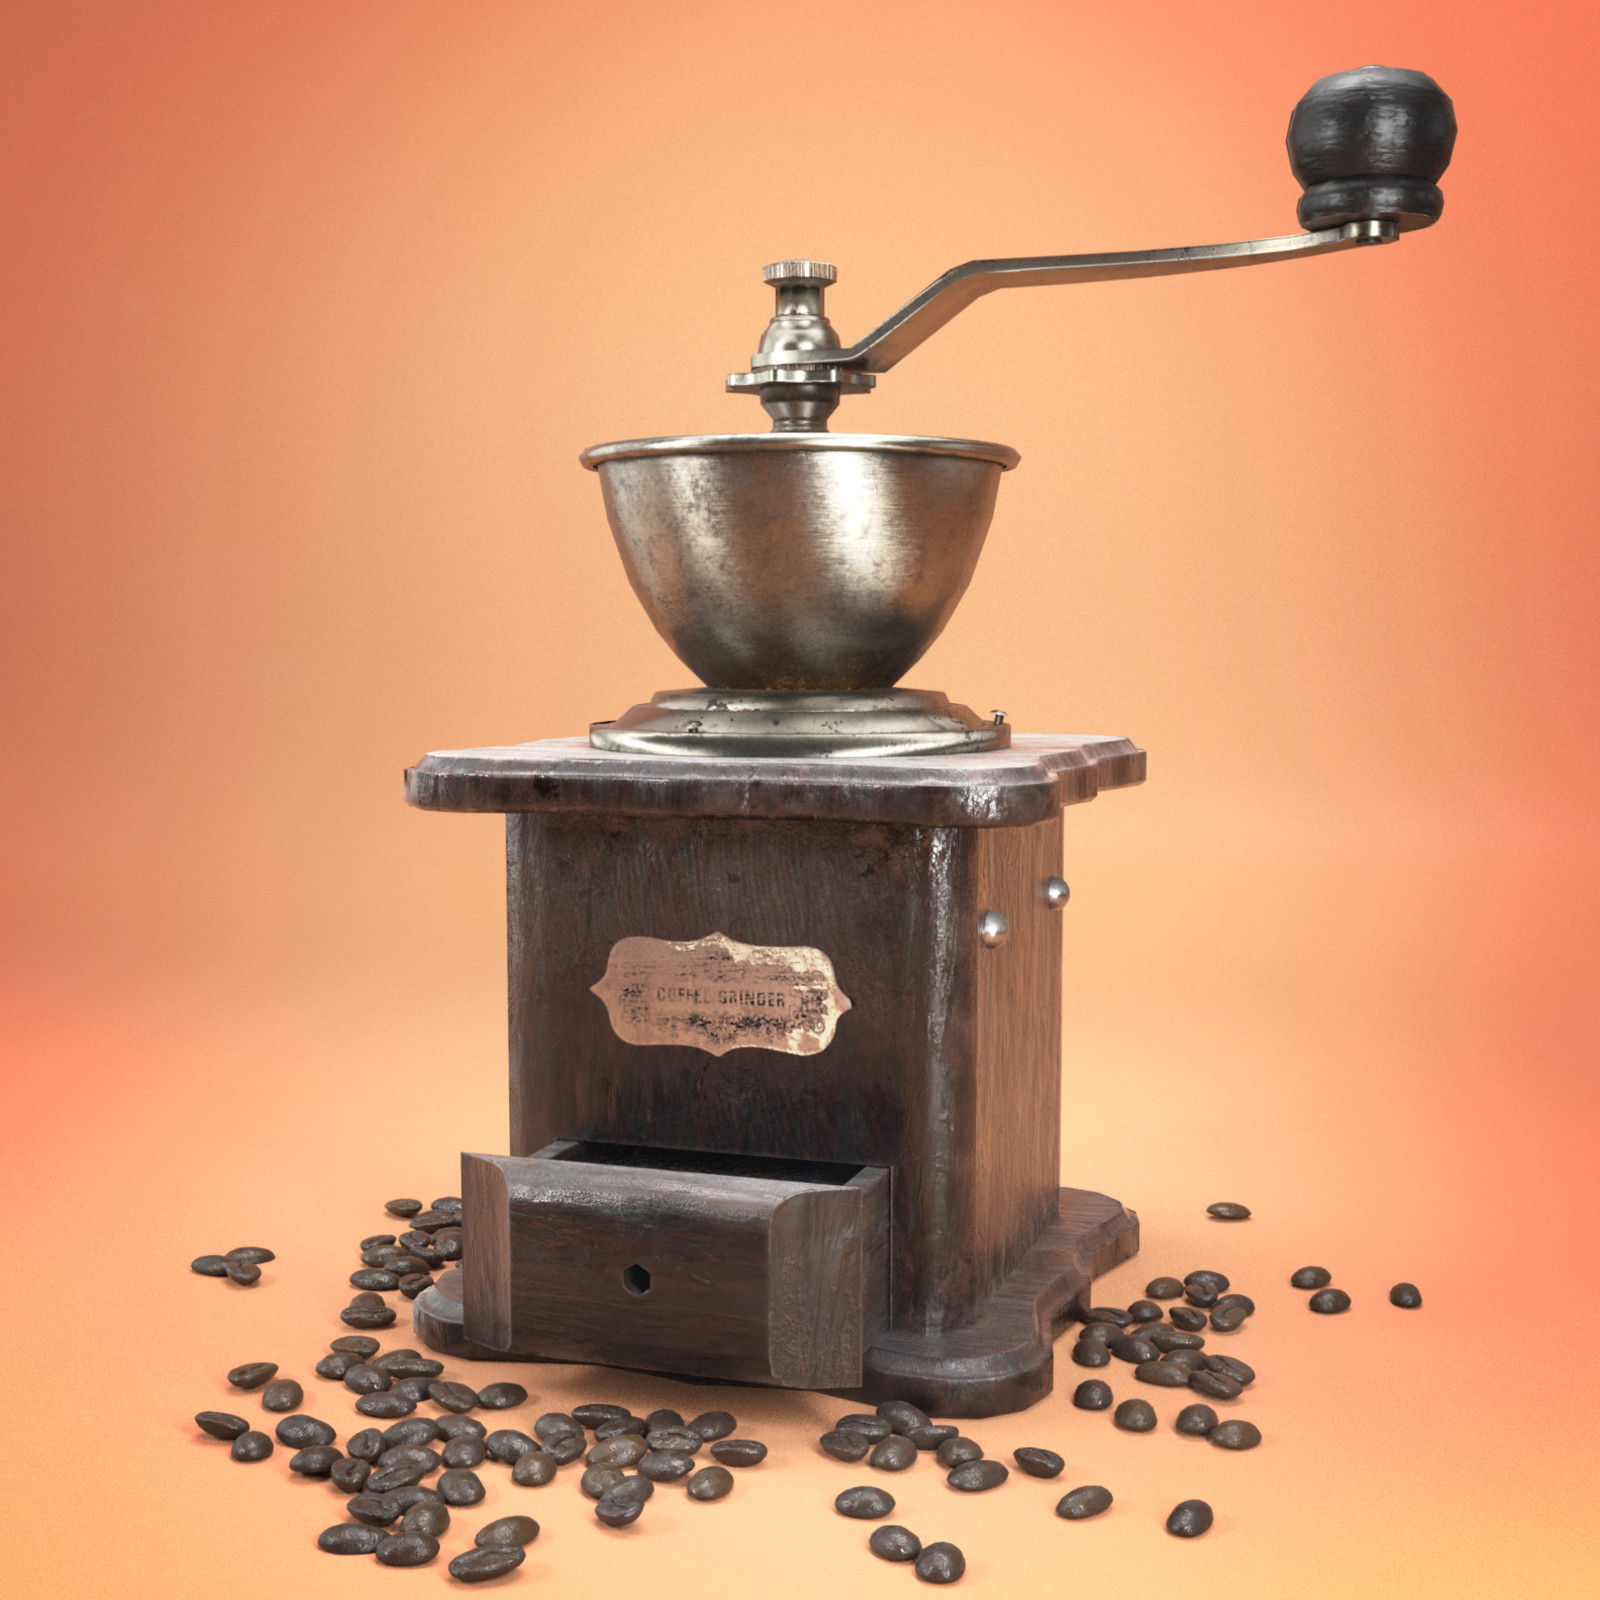 3229 Faces (Coffee Grinder). Rendered with Cycles.